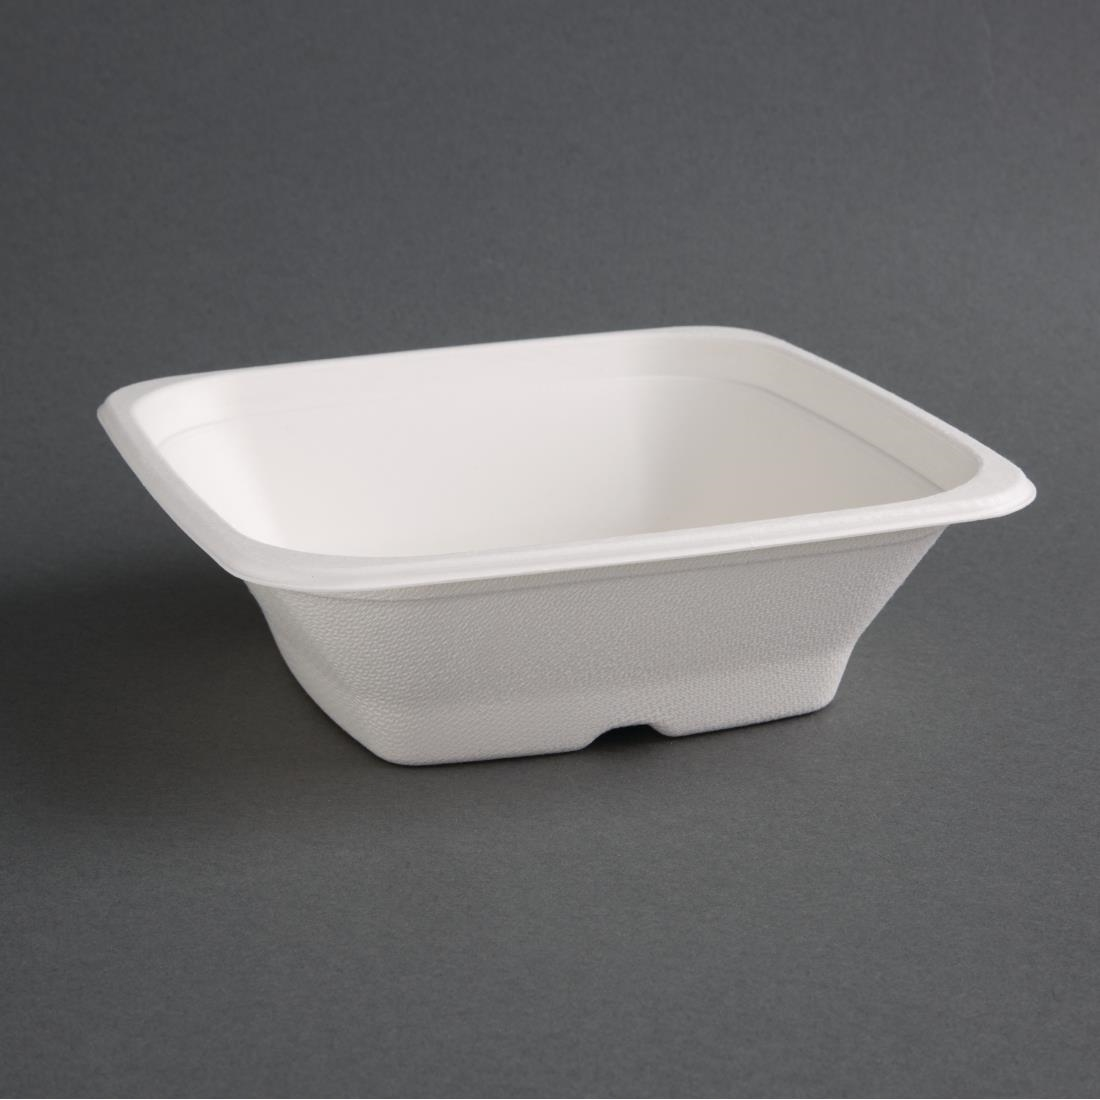 Image of Fiesta Green Compostable Bagasse Square Bowls 24oz (Pack of 50) Pack of 50